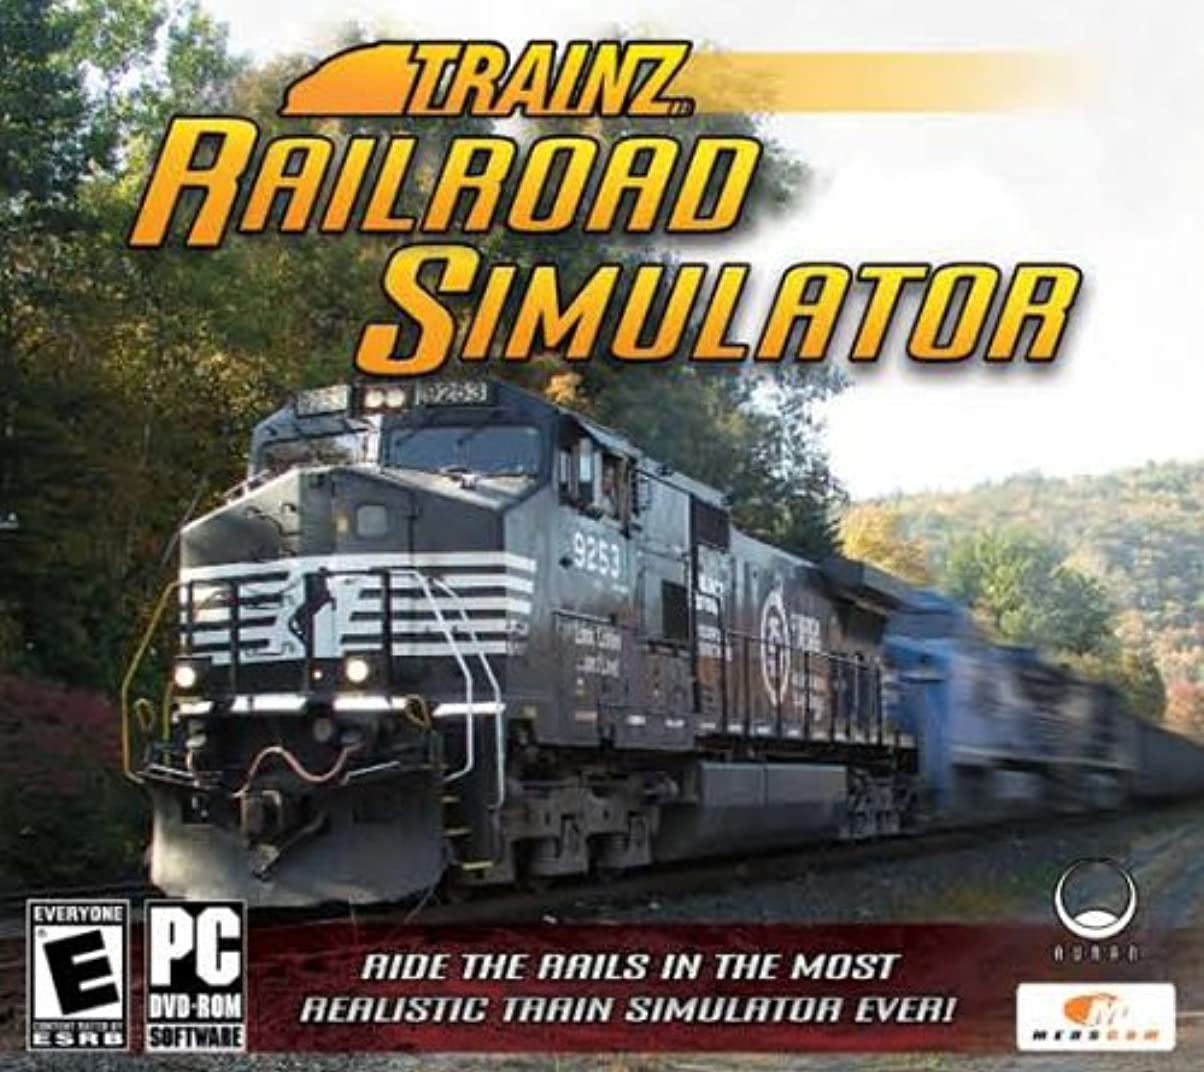 Trainz Railroad Simulator (Jewel Case) (輸入版)